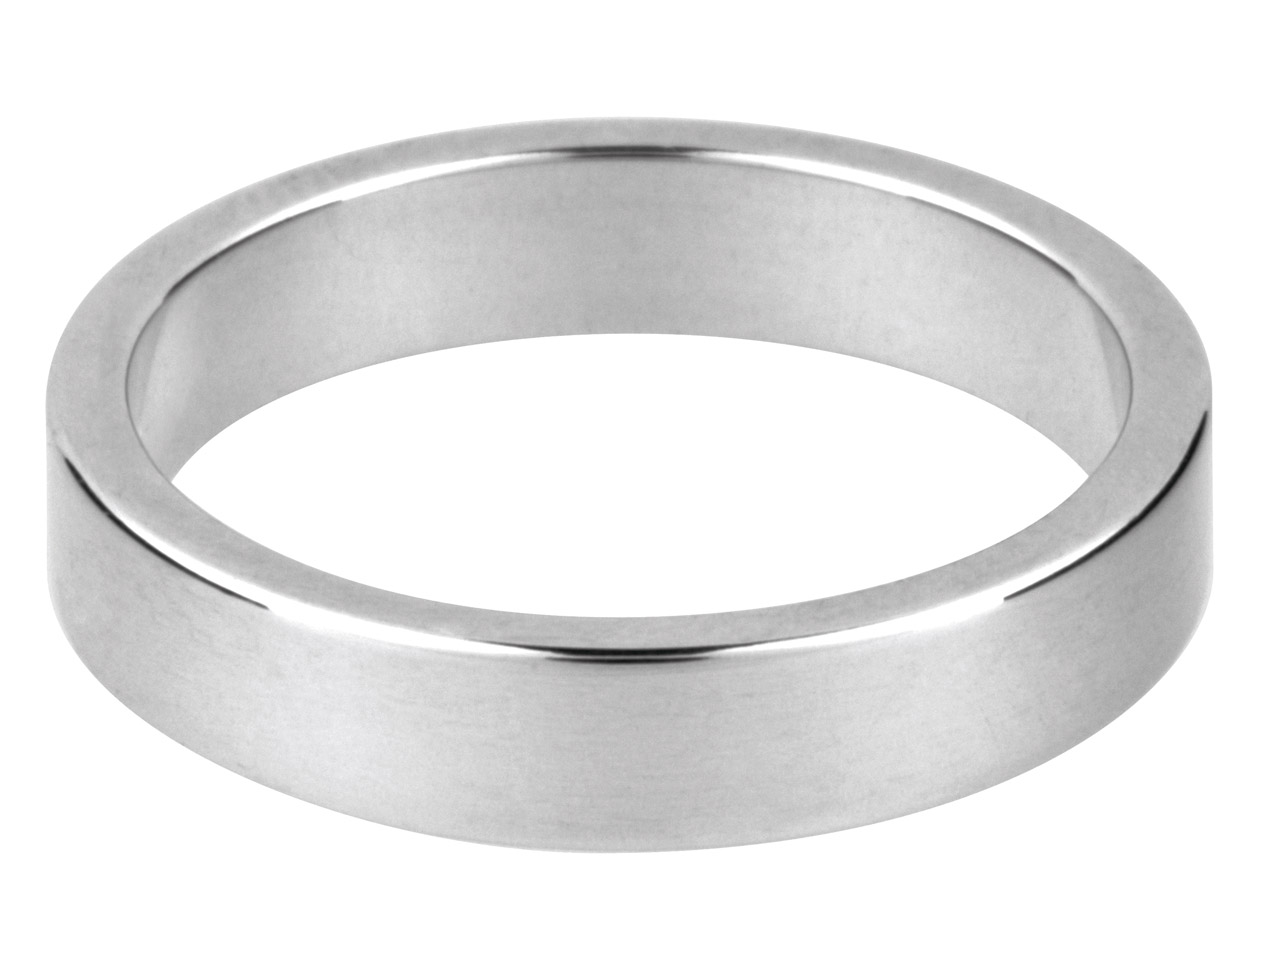 18ct White Gold Flat Wedding Ring  5.0mm, Size U, 8.6g Heavy Weight,  Hallmarked, Wall Thickness 1.53mm, 100% Recycled Gold